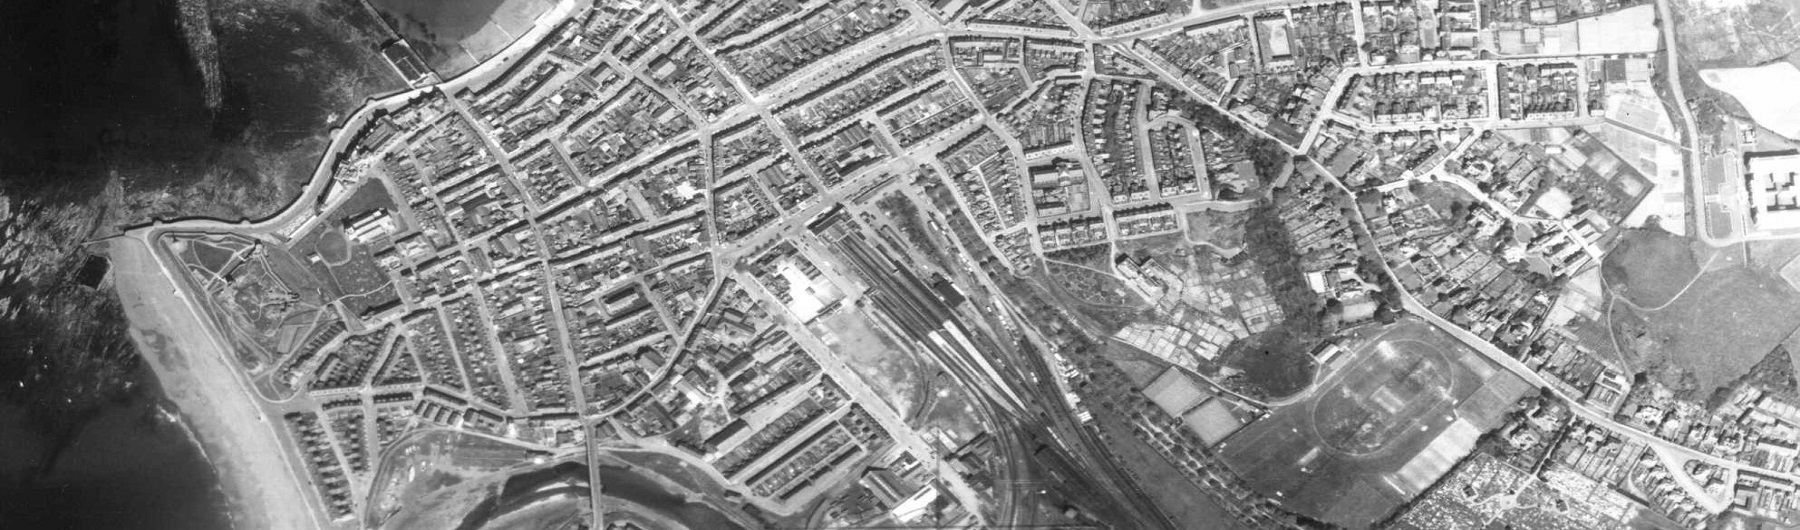 THE VIEW FROM ABOVE: One hundred years of aerial photographs of Wales